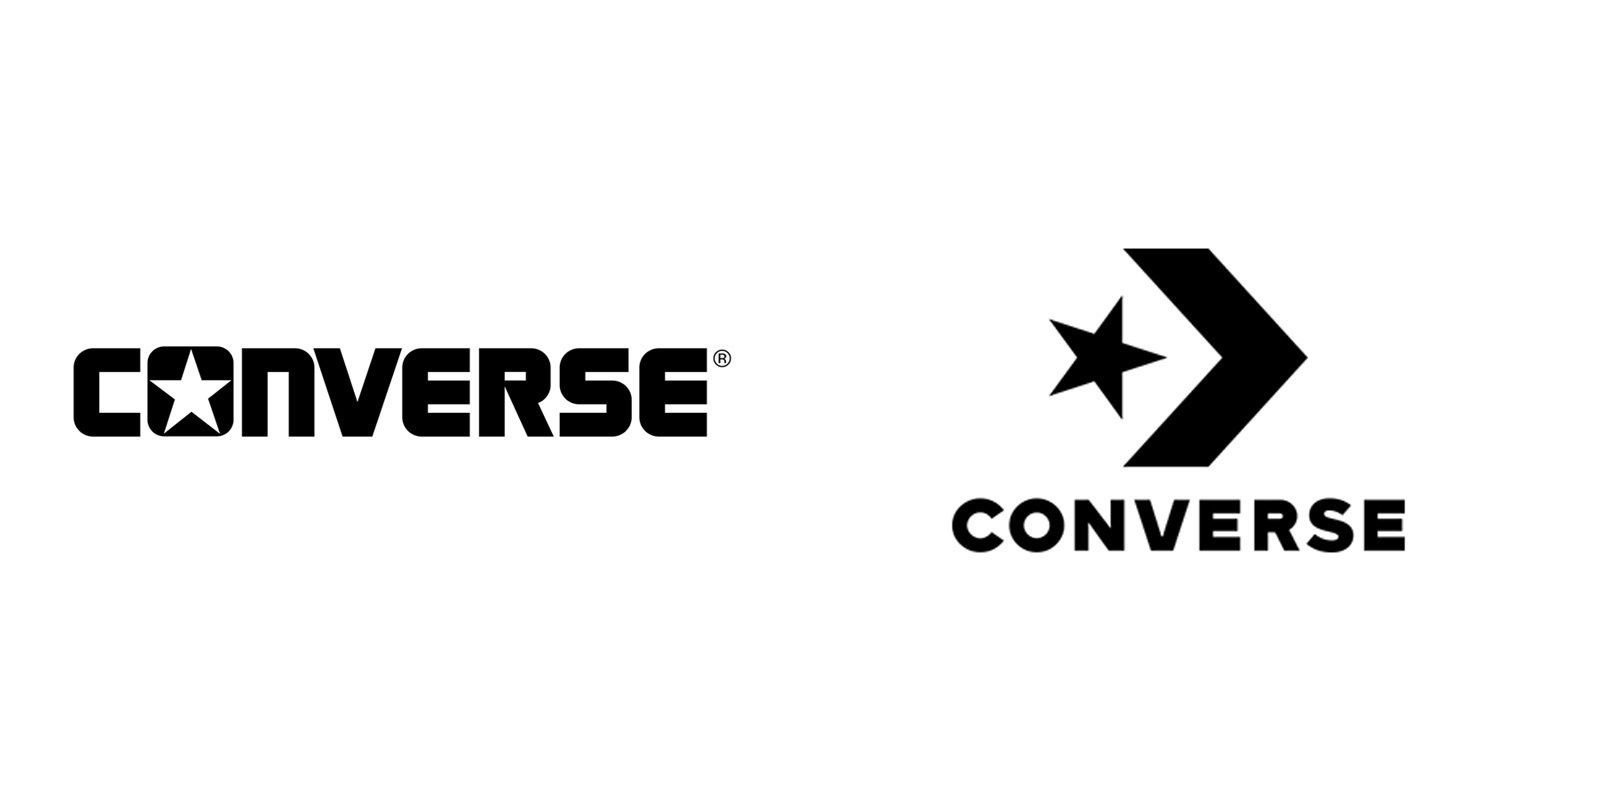 Converse s new logo  the trainer brand looks to its heritage for a fresh  identity ac9cd83a8f84